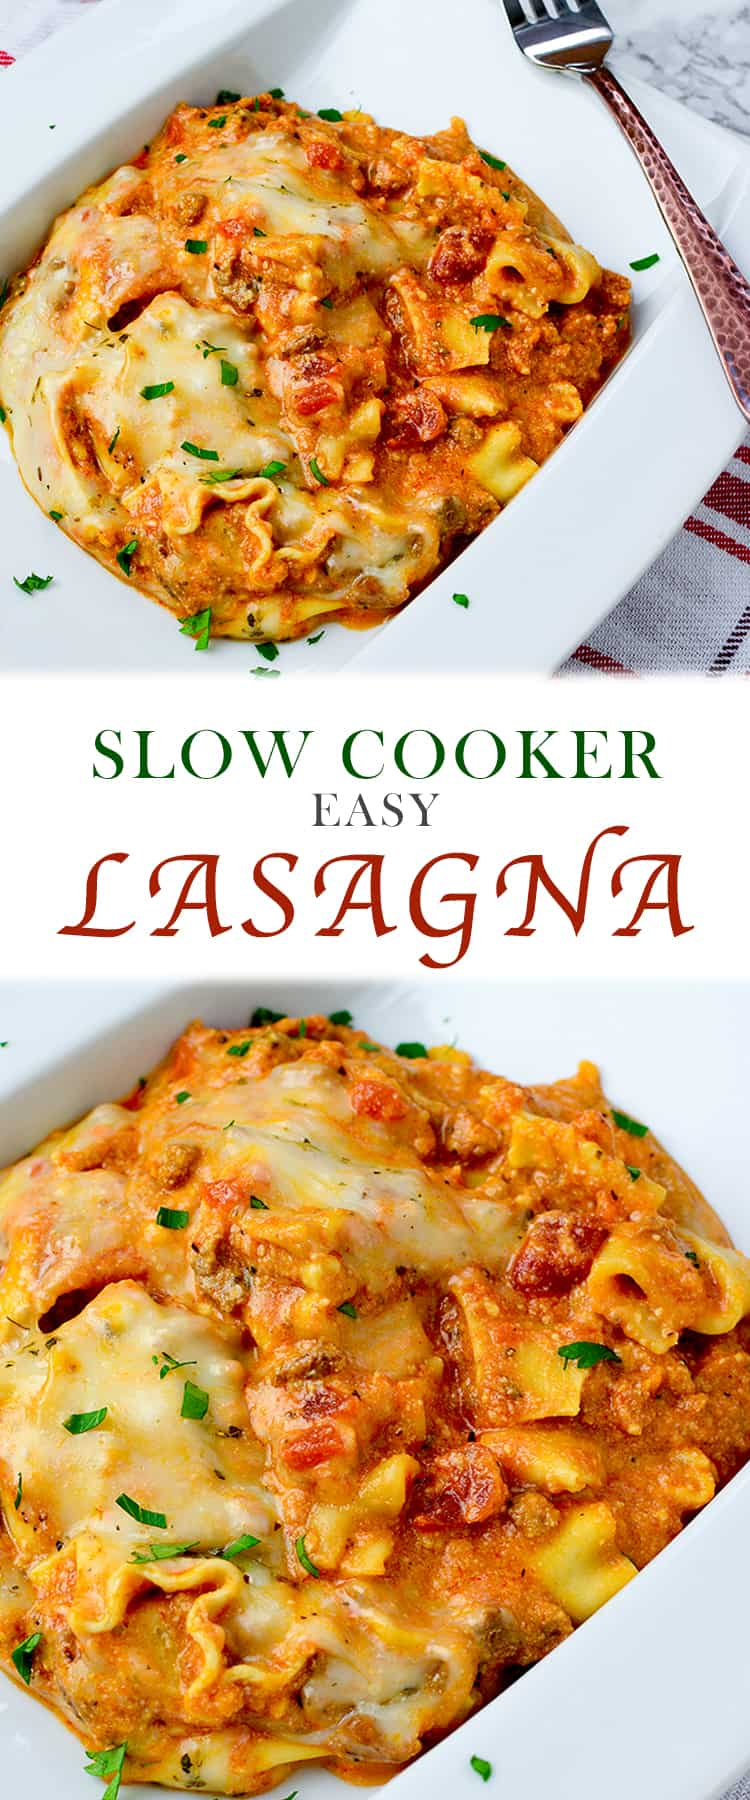 Making a homemade comfort food that the whole family loves just got easier with this Slow Cooker Easy Lasagna! This Italian dish often served on special occasions can now be enjoyed on any day thanks to delicious and traditional lasagna ingredients cooked in thecrockpot.